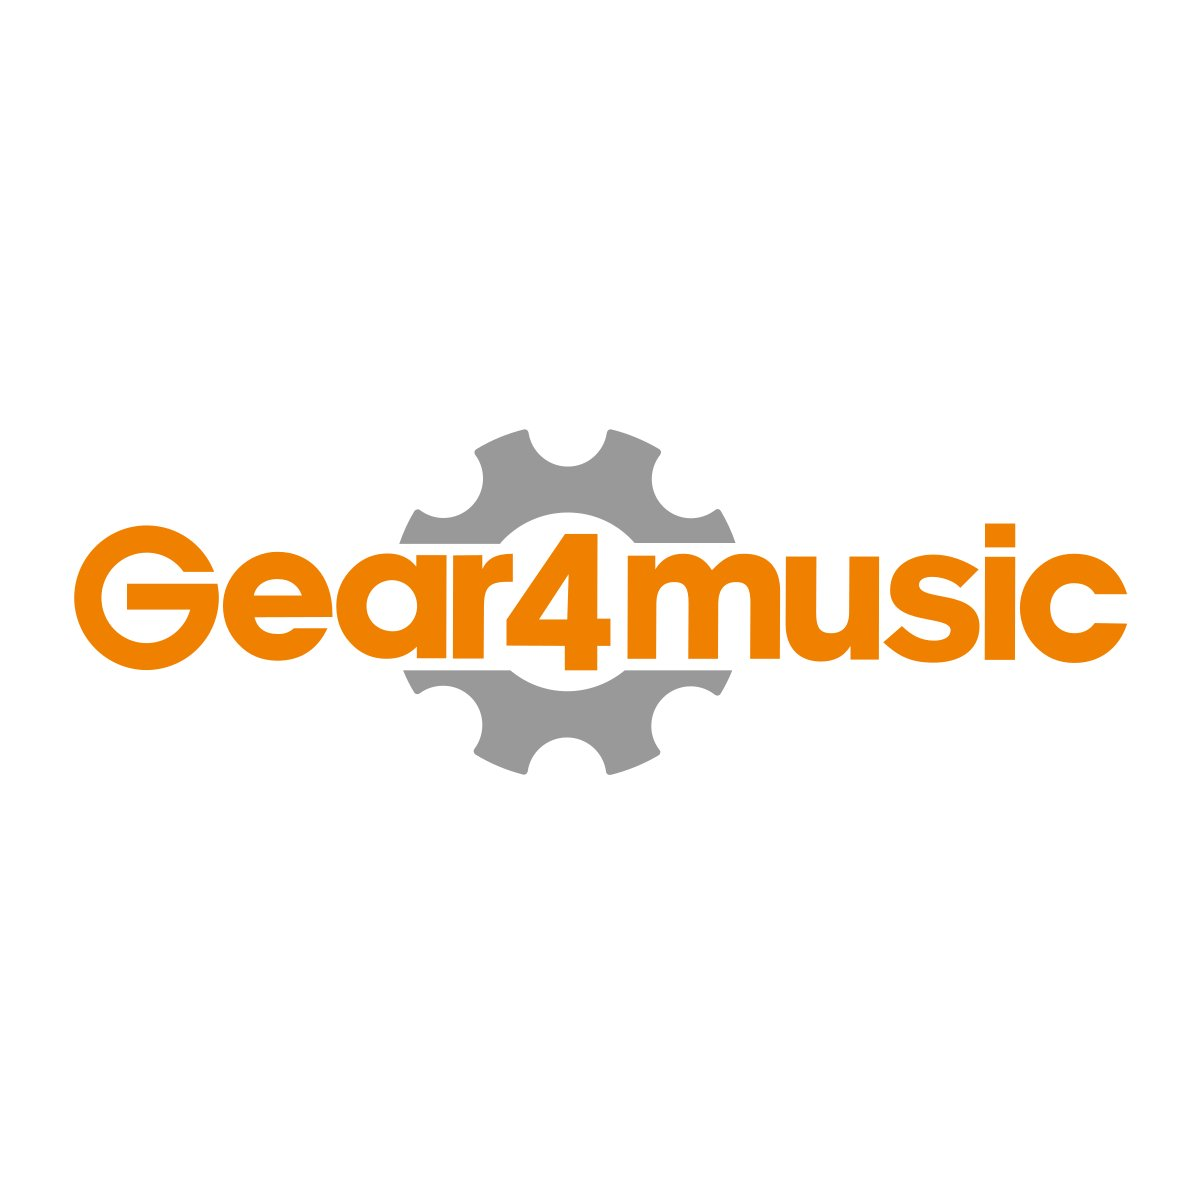 San Francisco – Semiakustikgitarre von Gear4music, Sunburst